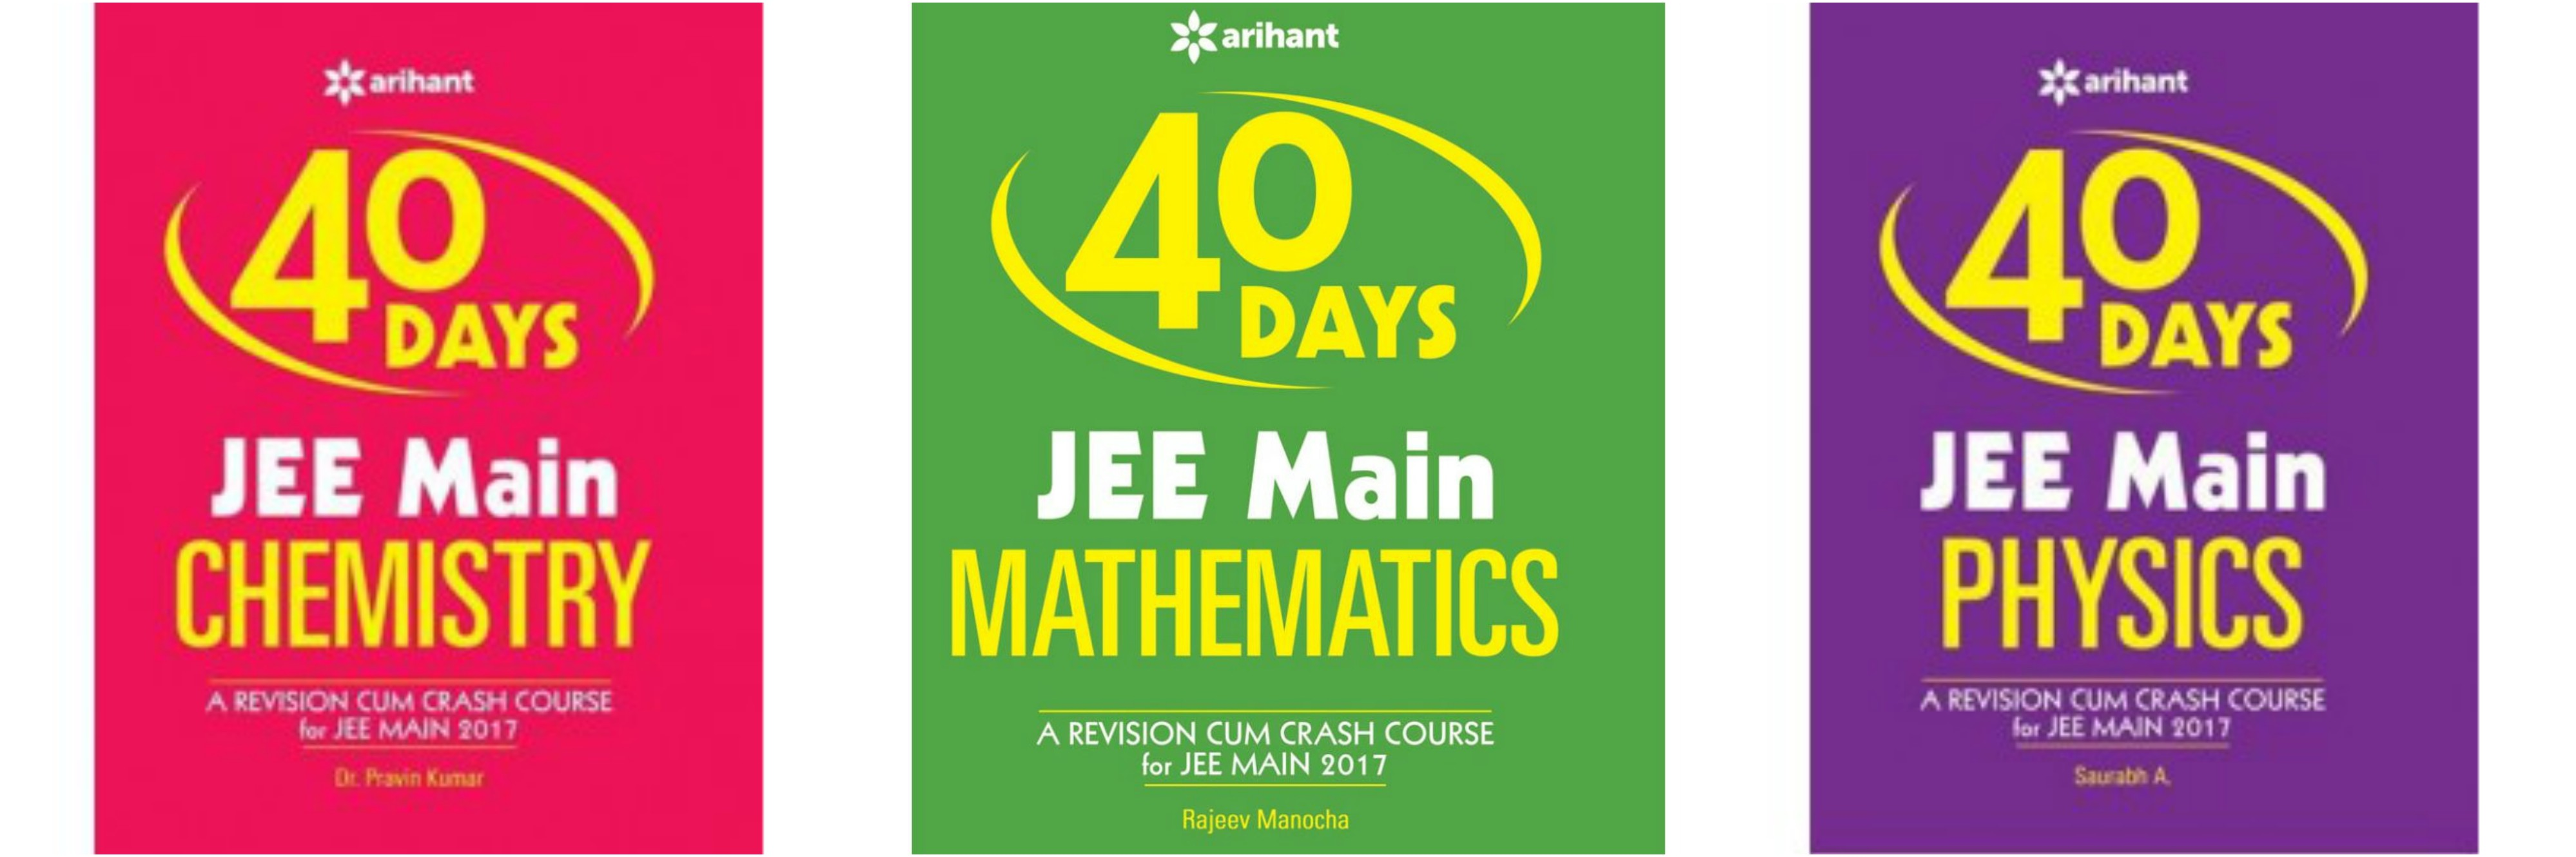 Image result for arihant jee mains 40 days